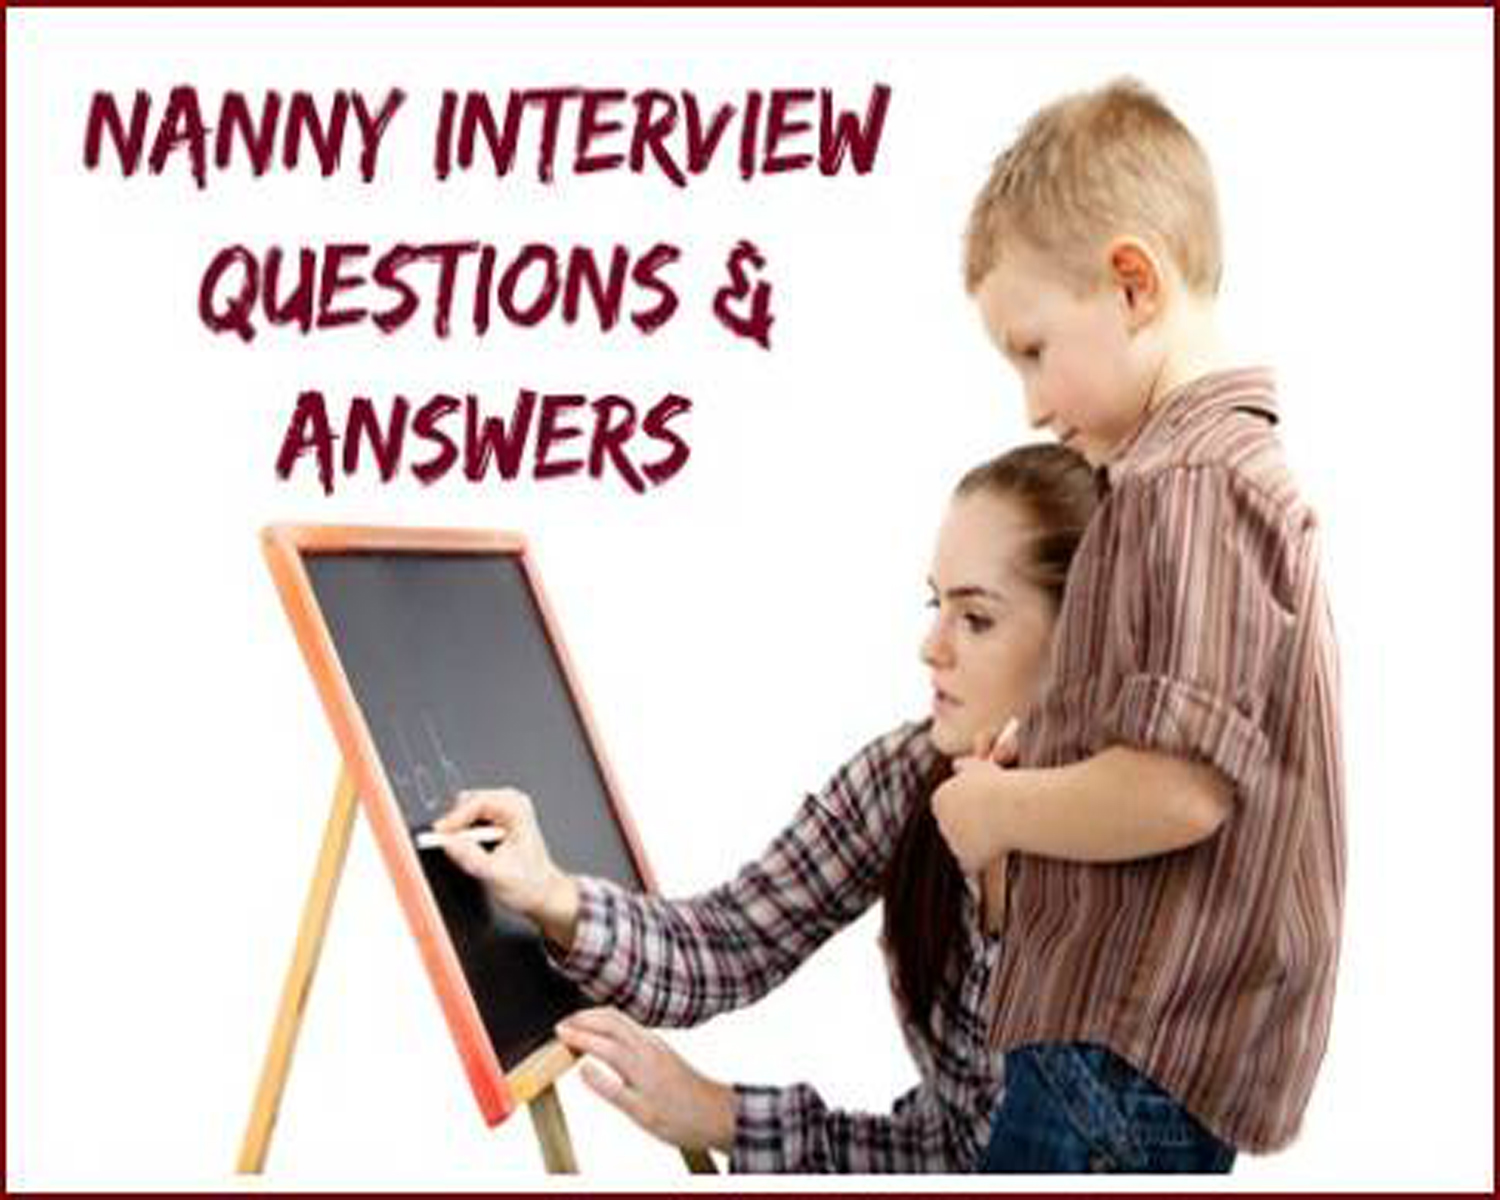 Nanny Interview for Canada's Work Permit?